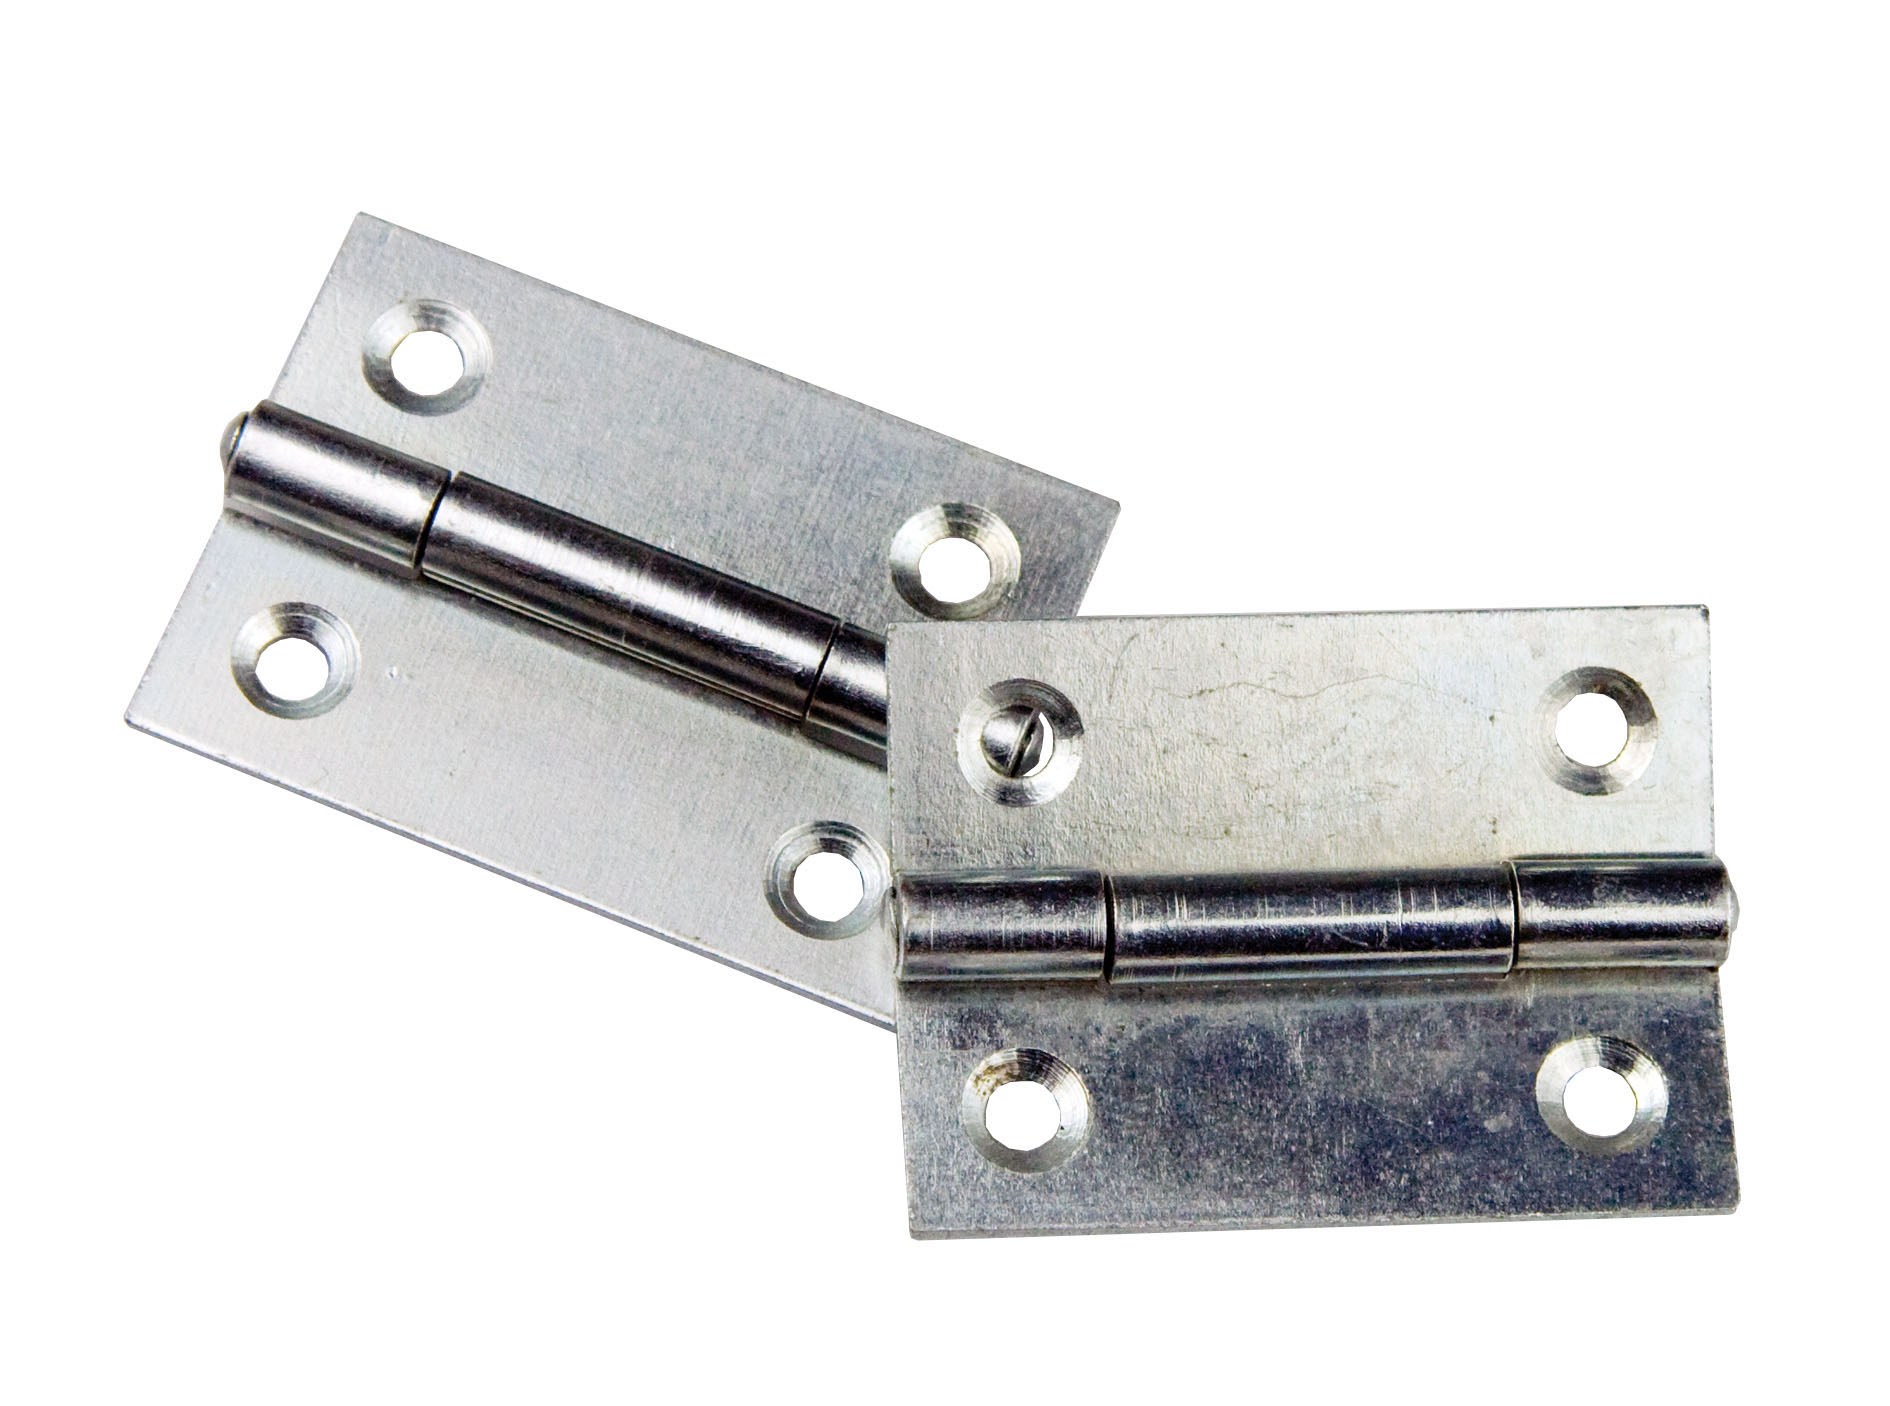 65 x 41mm Zinc Plated Butt Hinge 65 x 41mm Zinc Plated Butt Hinge Measurements Width : 65mm Height : 41mm Thickness : 1.5mm Screw Holes : 6 x 4.5mm Sold as singles Material: Steel Finish: Zinc Plated Manufactured by Siso 65 x 41mm Zinc Plated Butt Hinge Description These butt hinges are traditionally used on furniture doors or small lightweight doors. They are recessed into the frame and also the edge of the door so that when the door is closed they can butt up together ensuring the door is shut flush. The knuckle of the hinge is normally on show and is often matched with handles or knobs of a similiar finish.